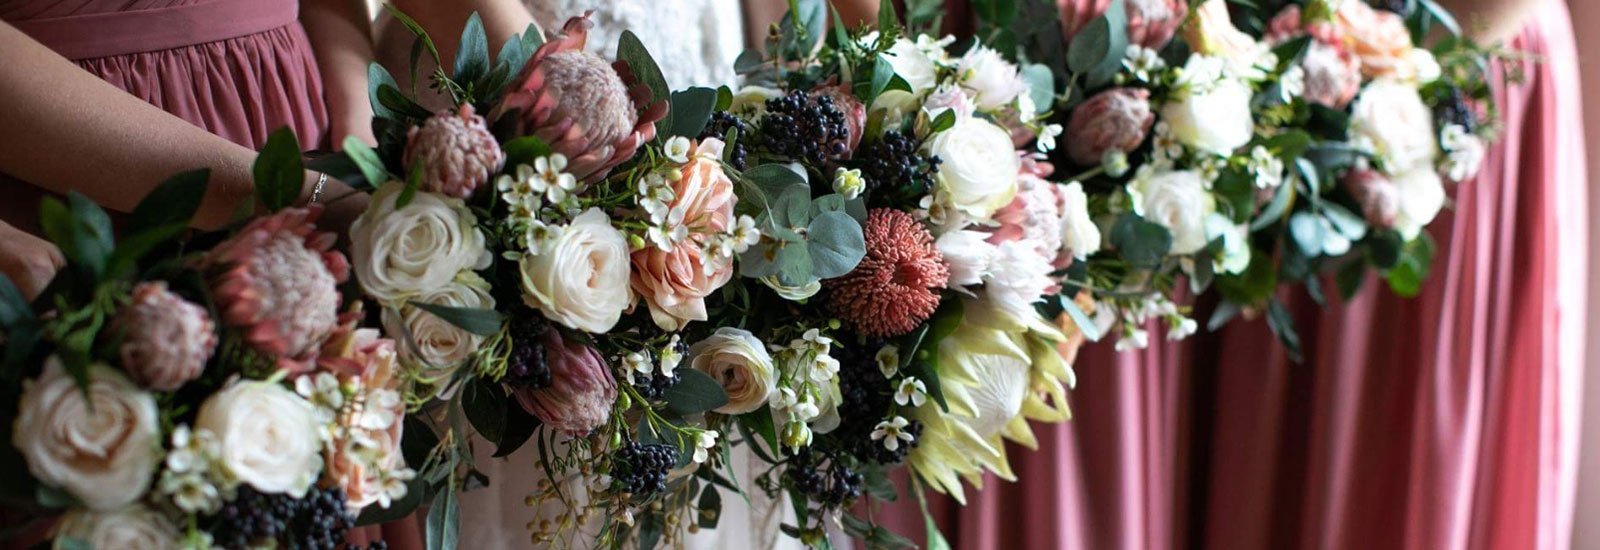 Silk Native Bridal Bouquets Flowers For Ever After Melbourne